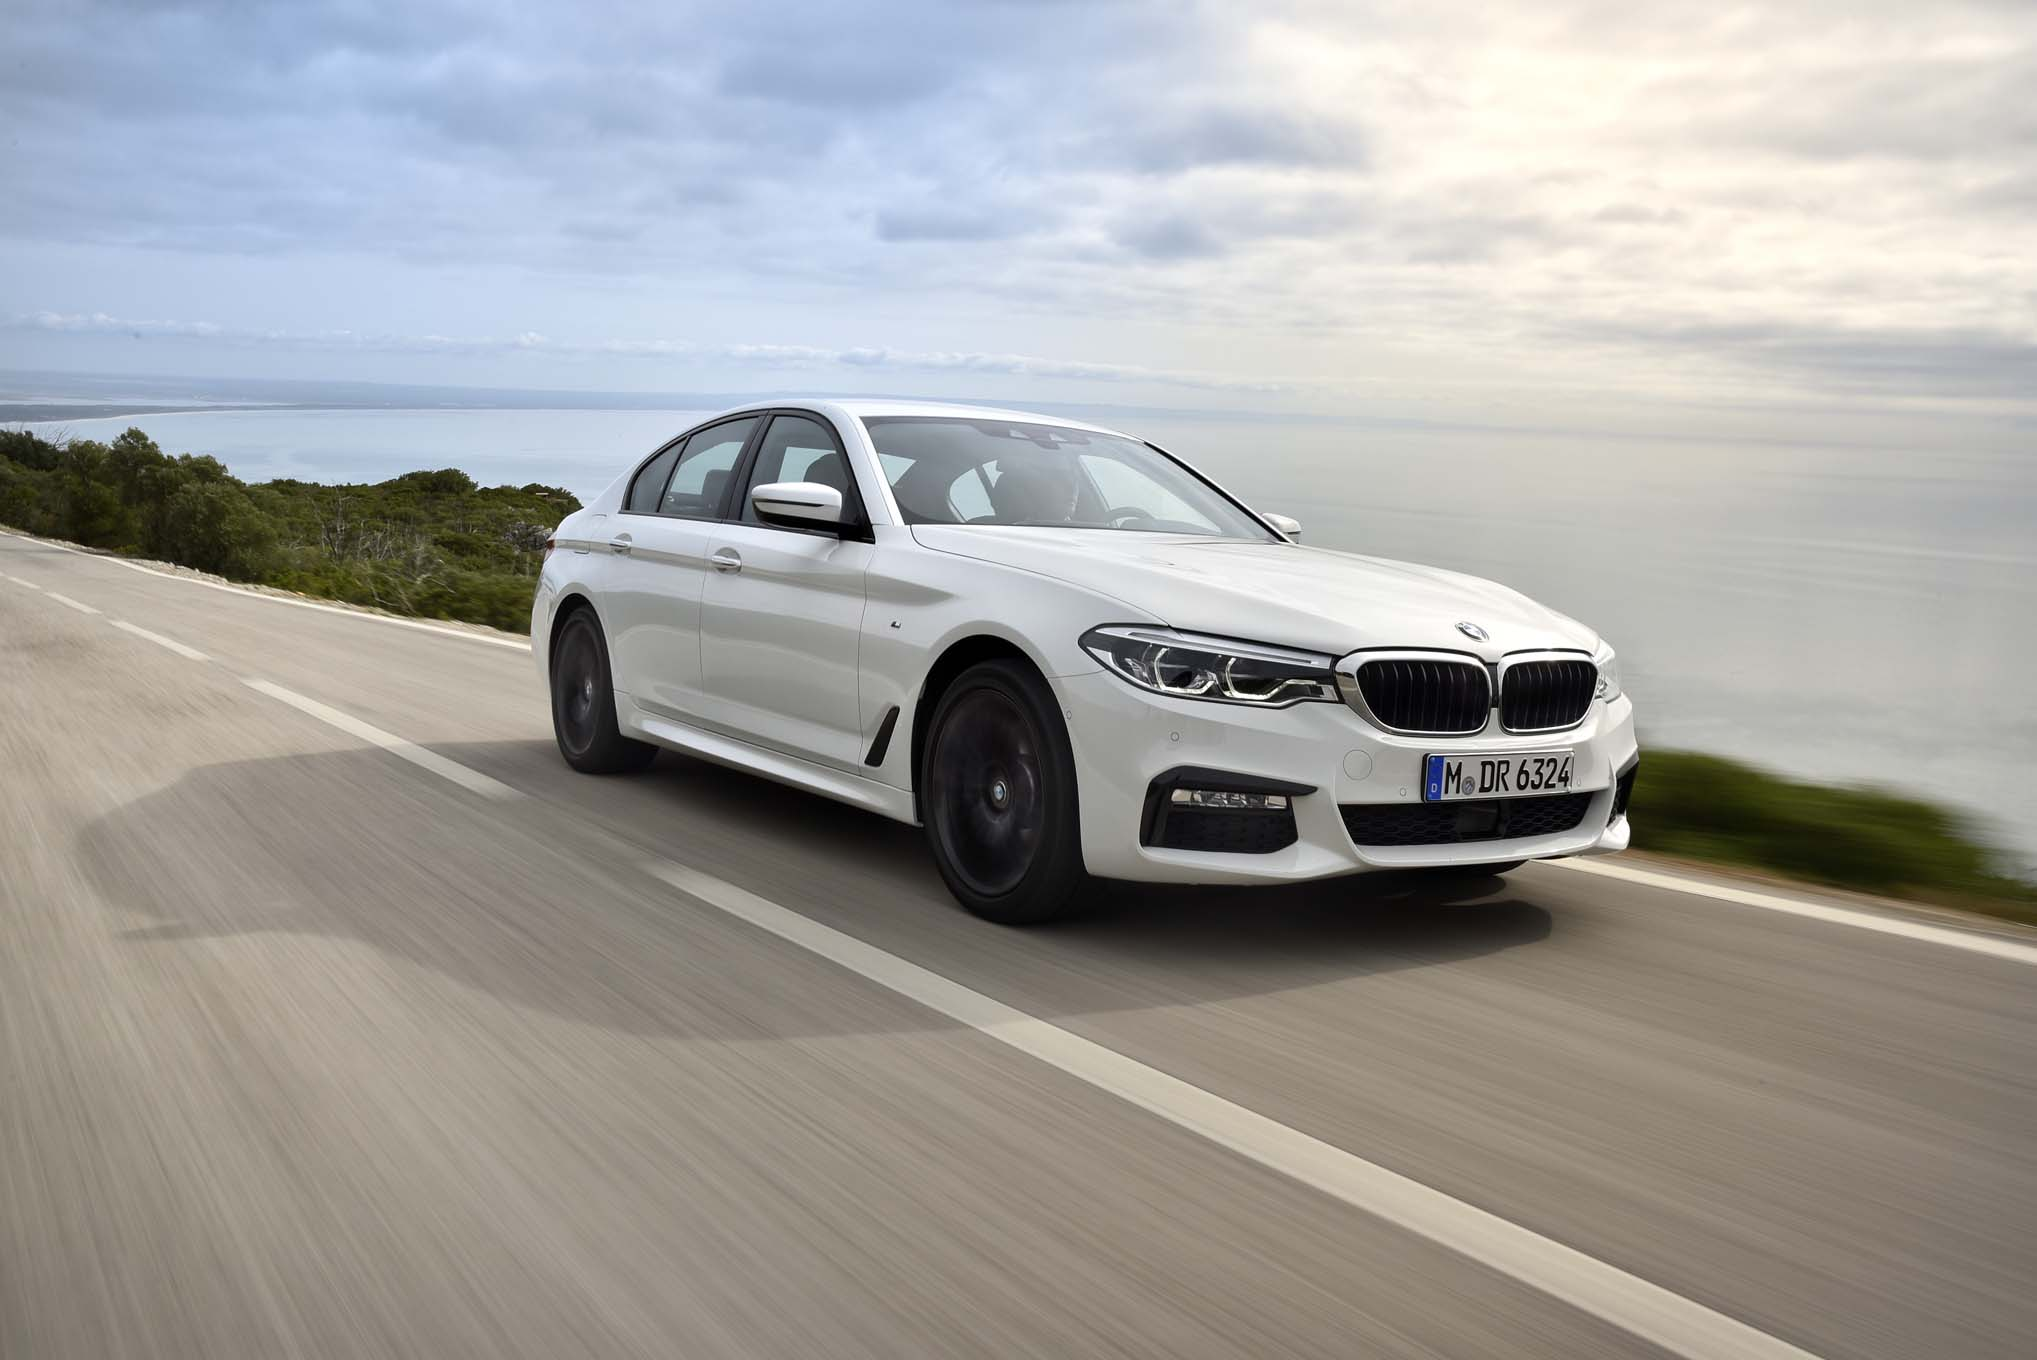 2017 BMW 540i M Sport Test Drive (View 6 of 35)